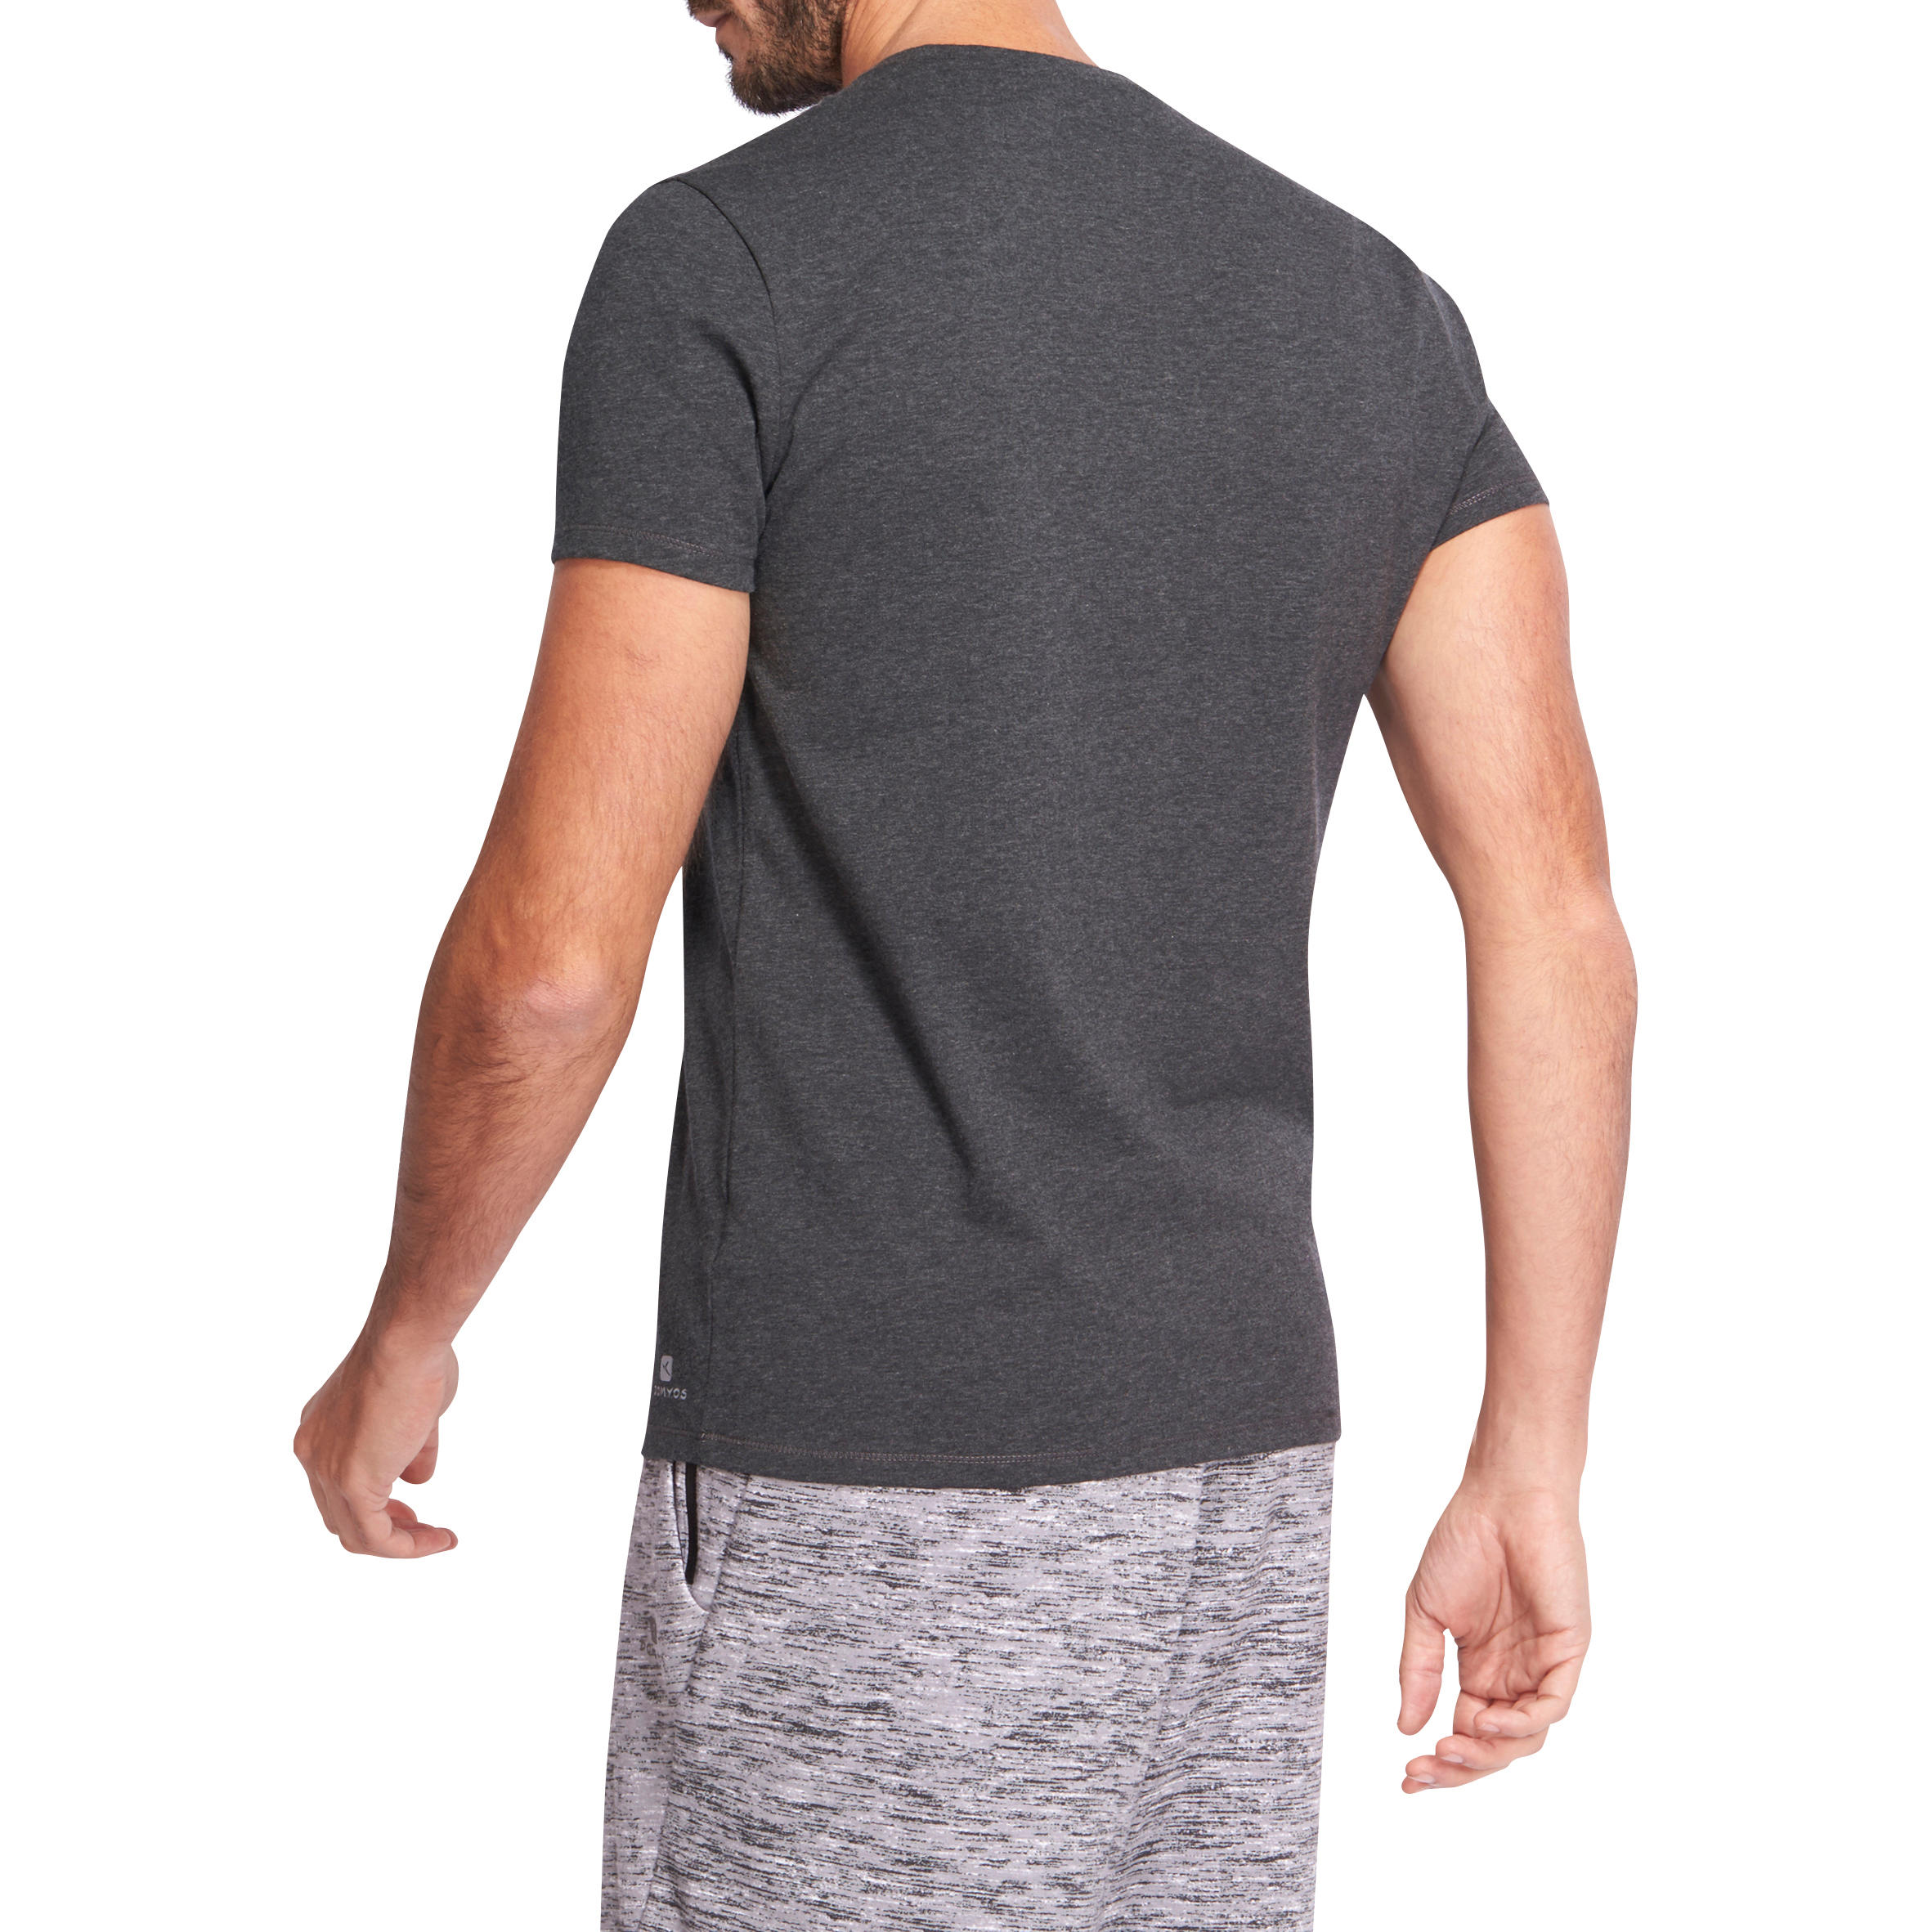 T-shirt 500 col V slim Pilates Gym douce homme gris chiné foncé